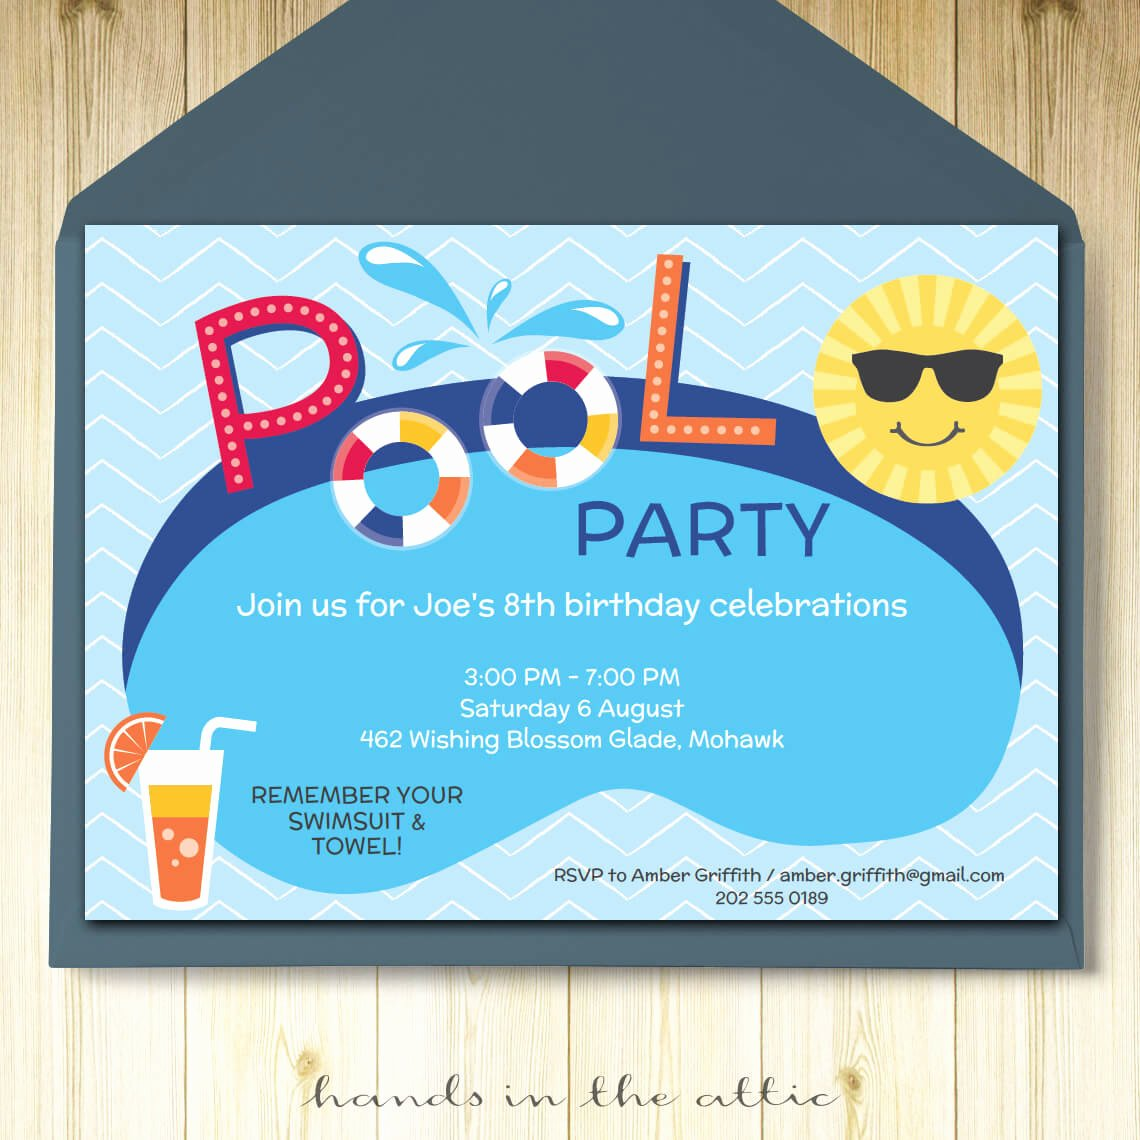 Pool Party Invite Template Inspirational Pool Party Invitation Card Editable Template Party Printable